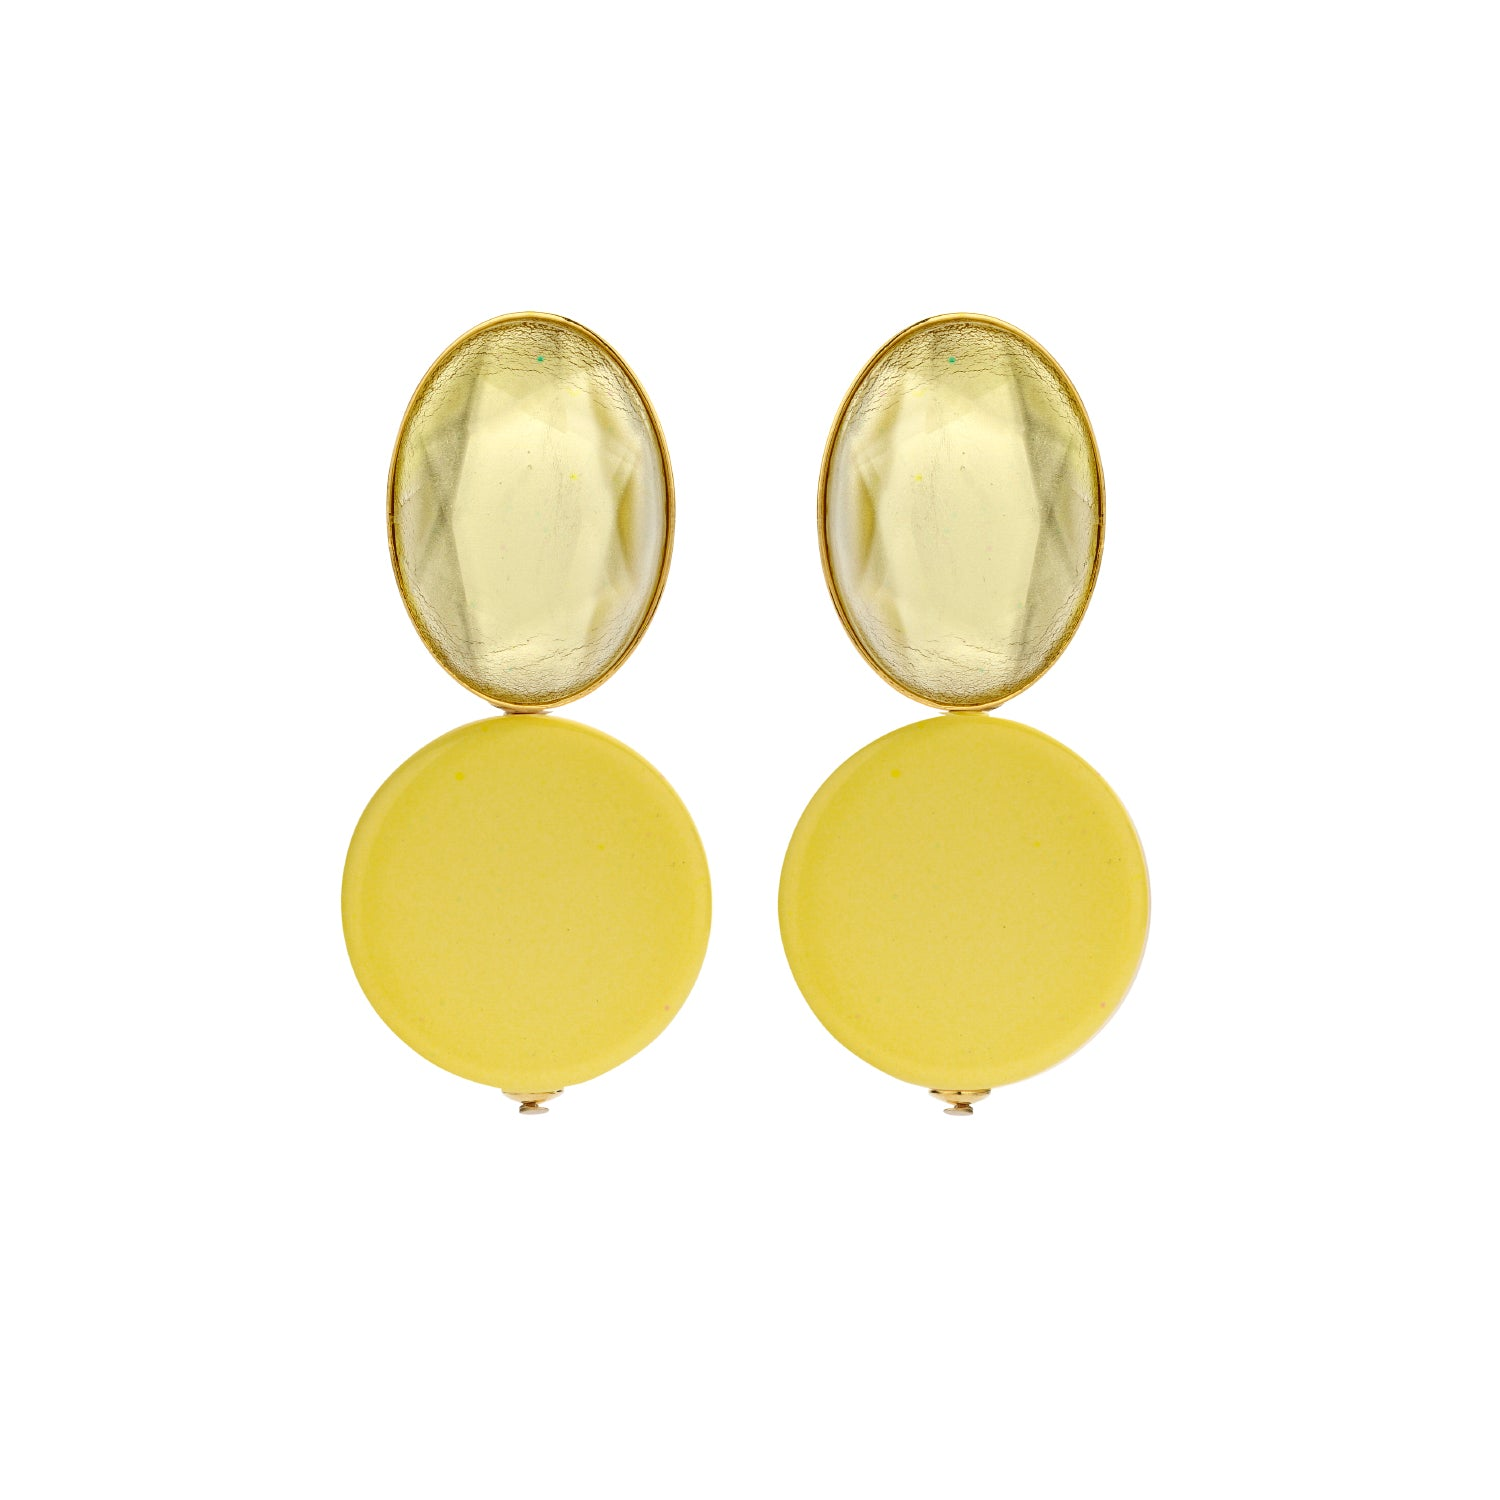 Mona yellow earrings - Souvenirs de Pomme